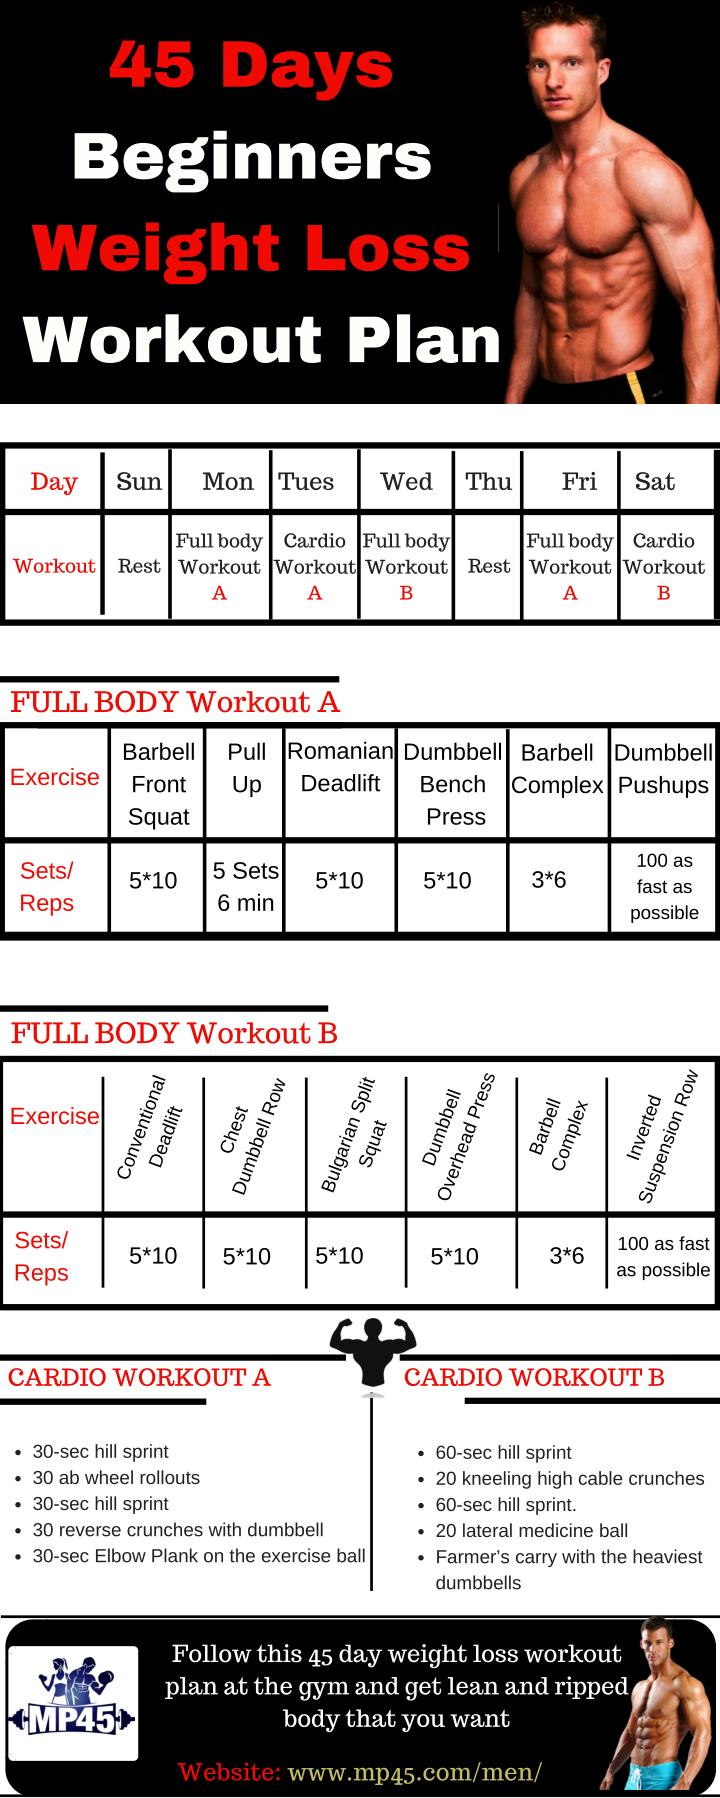 PPT - Burn Fat Fast With These 45 Day Weight Loss Workout